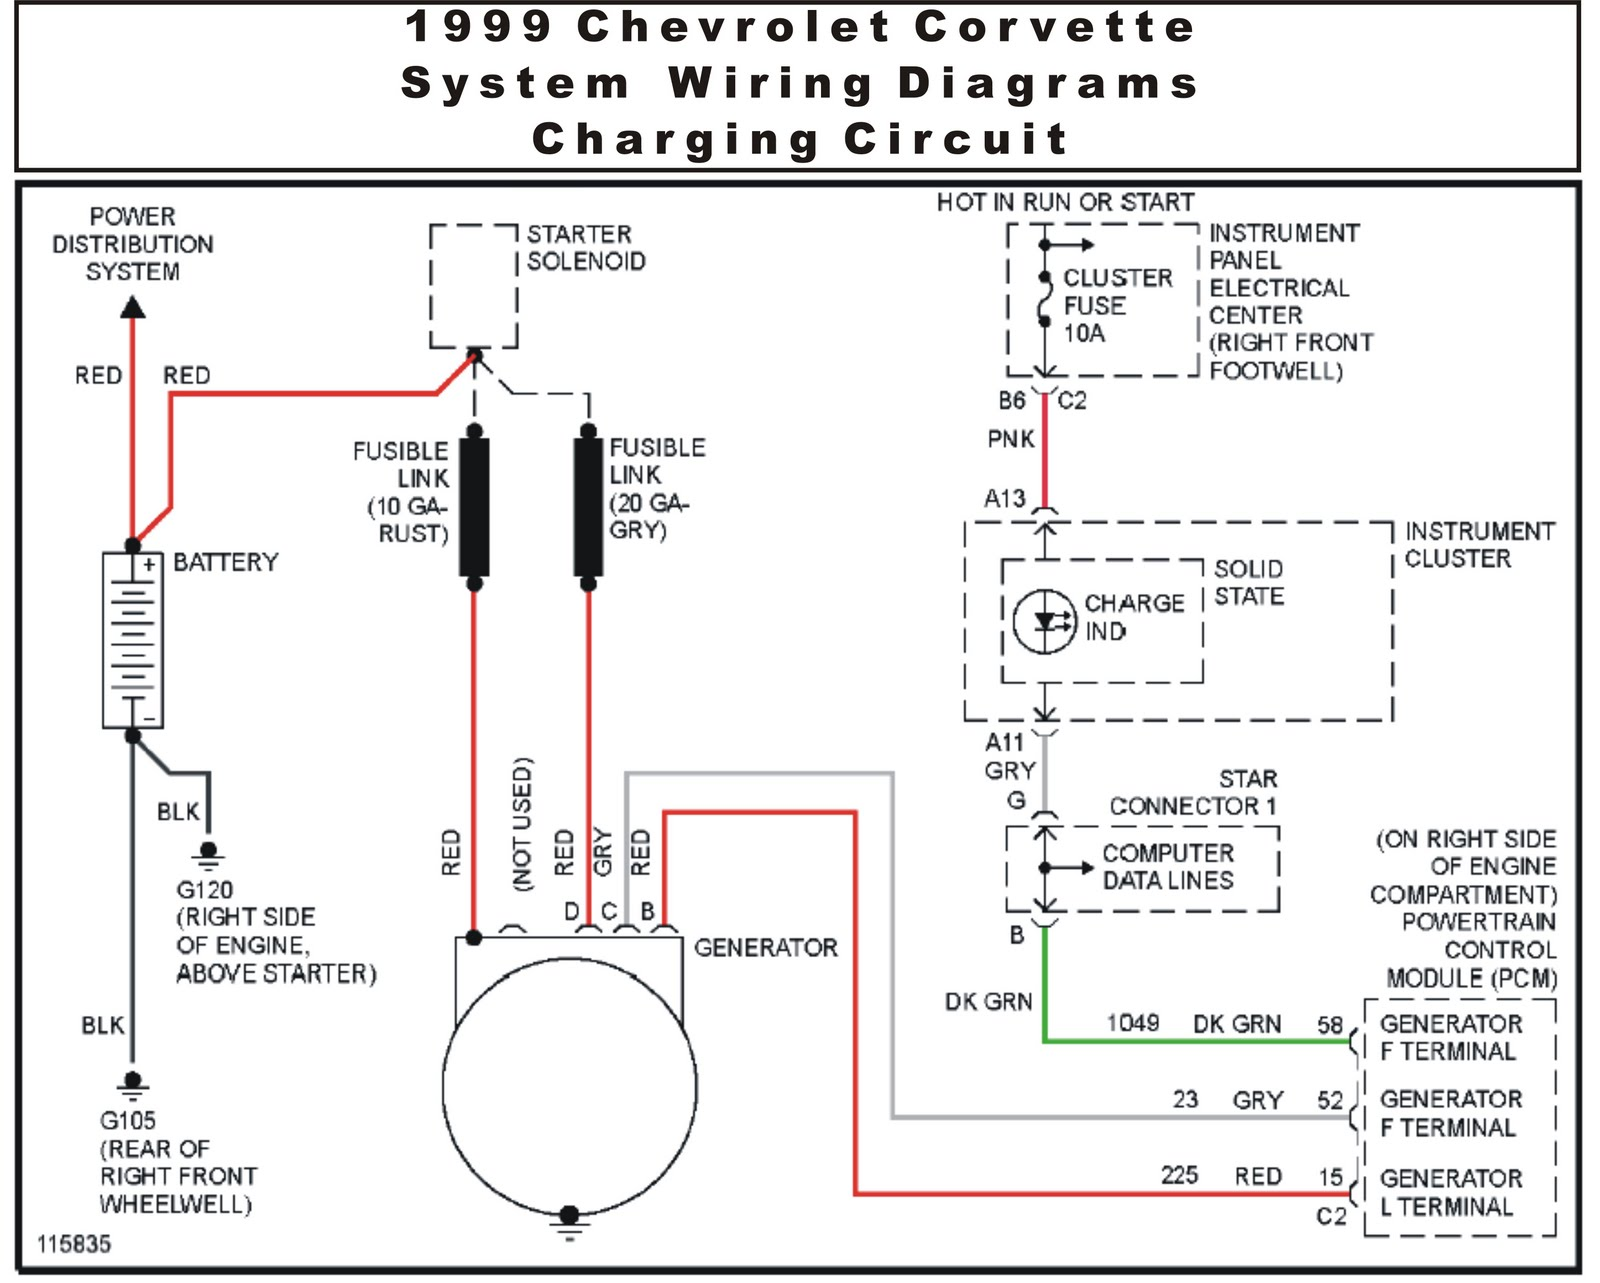 1999 Chevrolet Corvette System Wiring Diagrams Charging